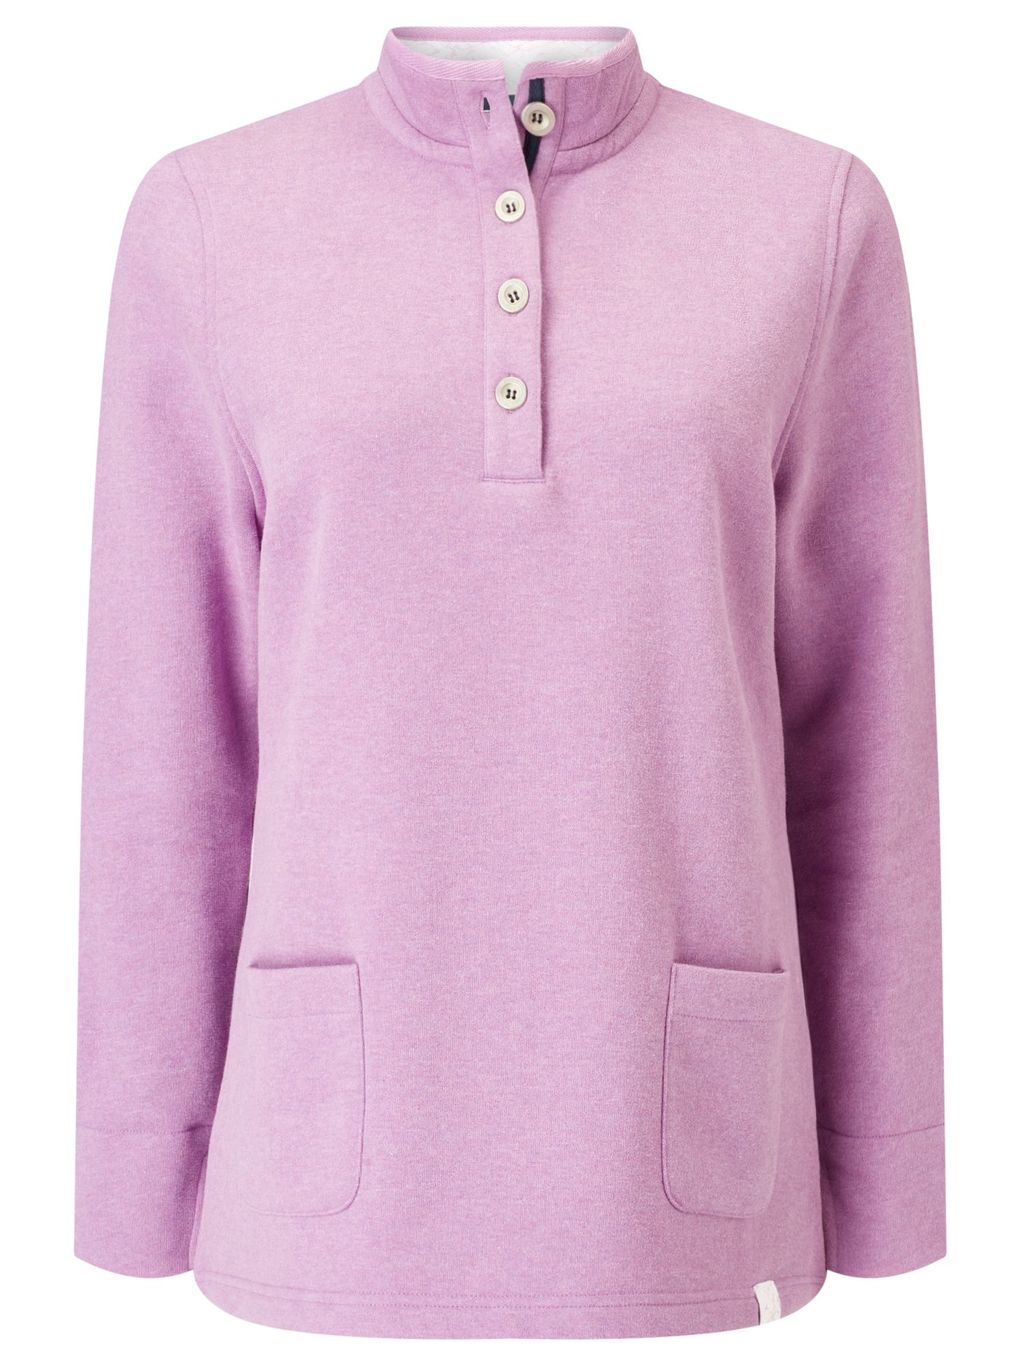 Orchid Marl Funnel, Pink - pattern: plain; neckline: high neck; predominant colour: pink; occasions: casual; length: standard; style: top; fibres: cotton - mix; fit: body skimming; hip detail: subtle/flattering hip detail; sleeve length: long sleeve; sleeve style: standard; pattern type: fabric; texture group: jersey - stretchy/drapey; season: s/s 2016; wardrobe: highlight; embellishment location: bust